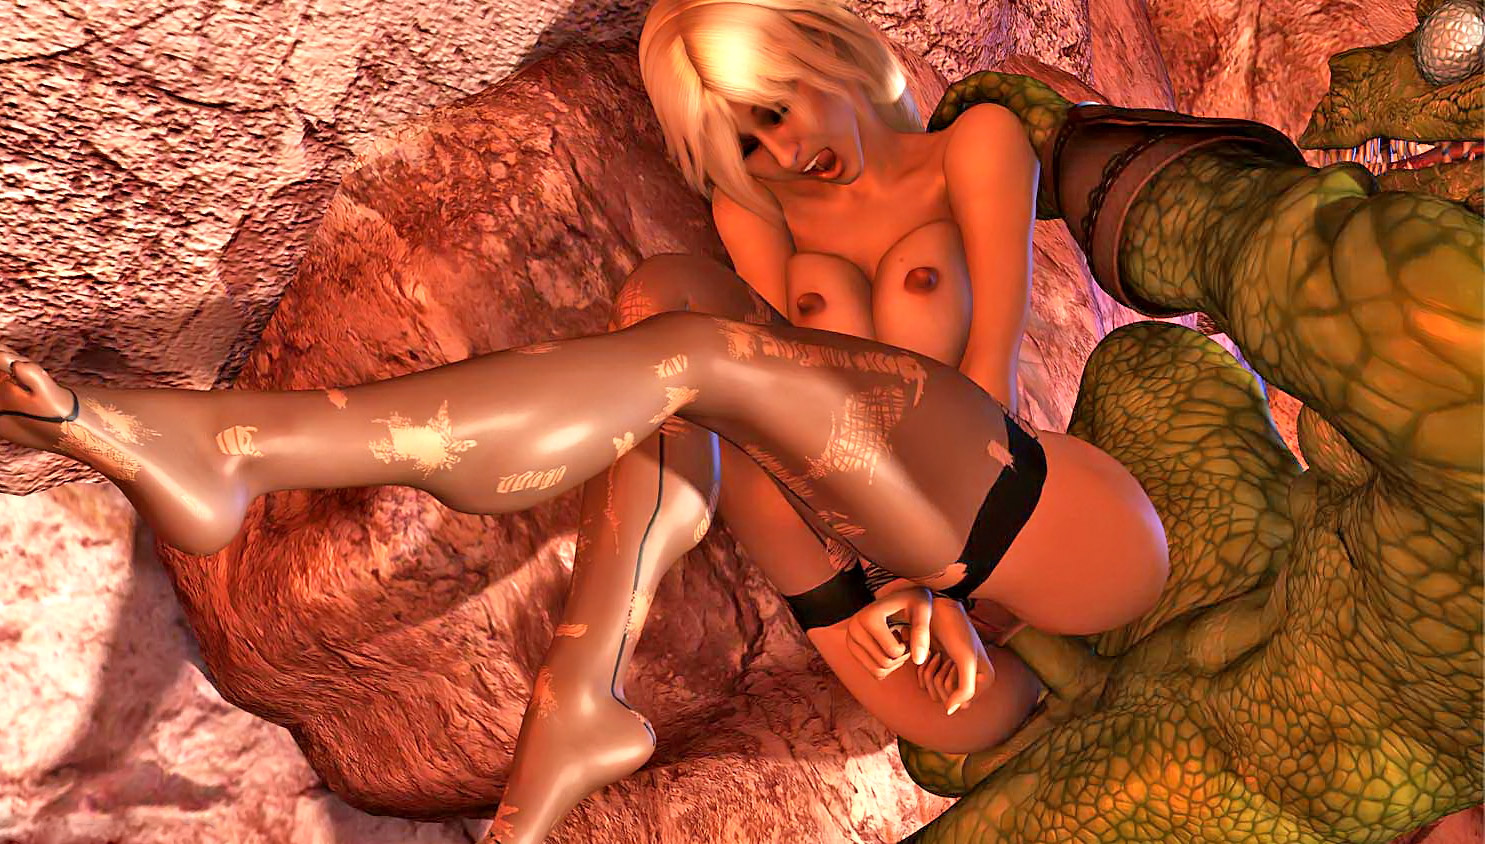 3d sex anime monster alien hentai image